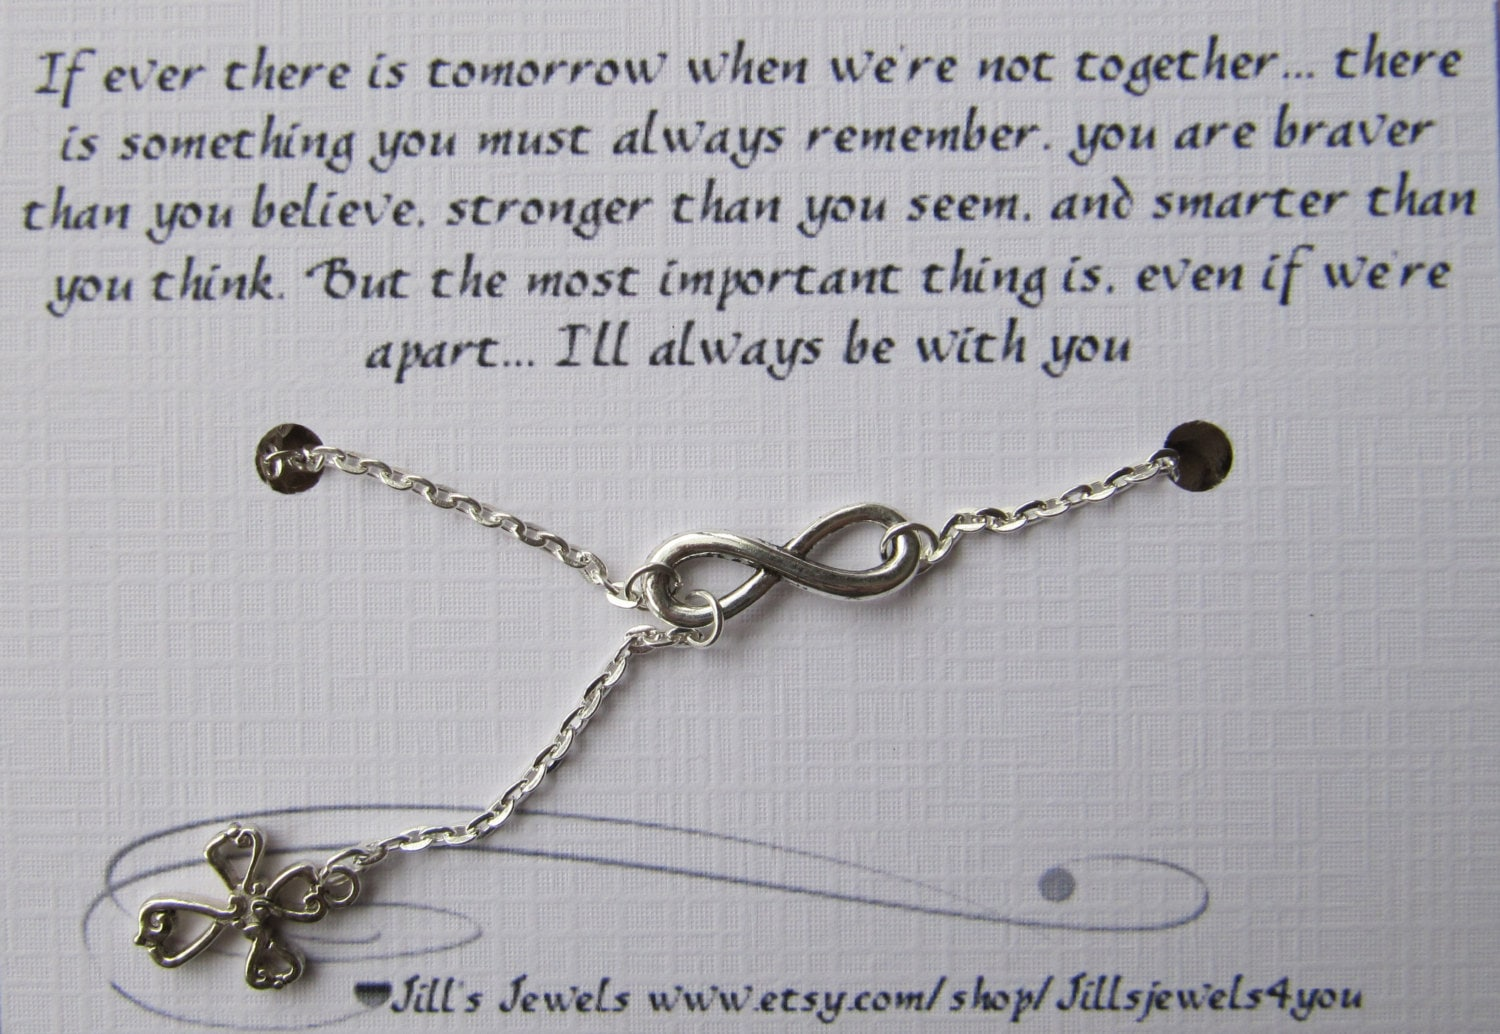 Quote About Distance And Friendship Small Infinity And Sideways Cross Necklace And Friendship